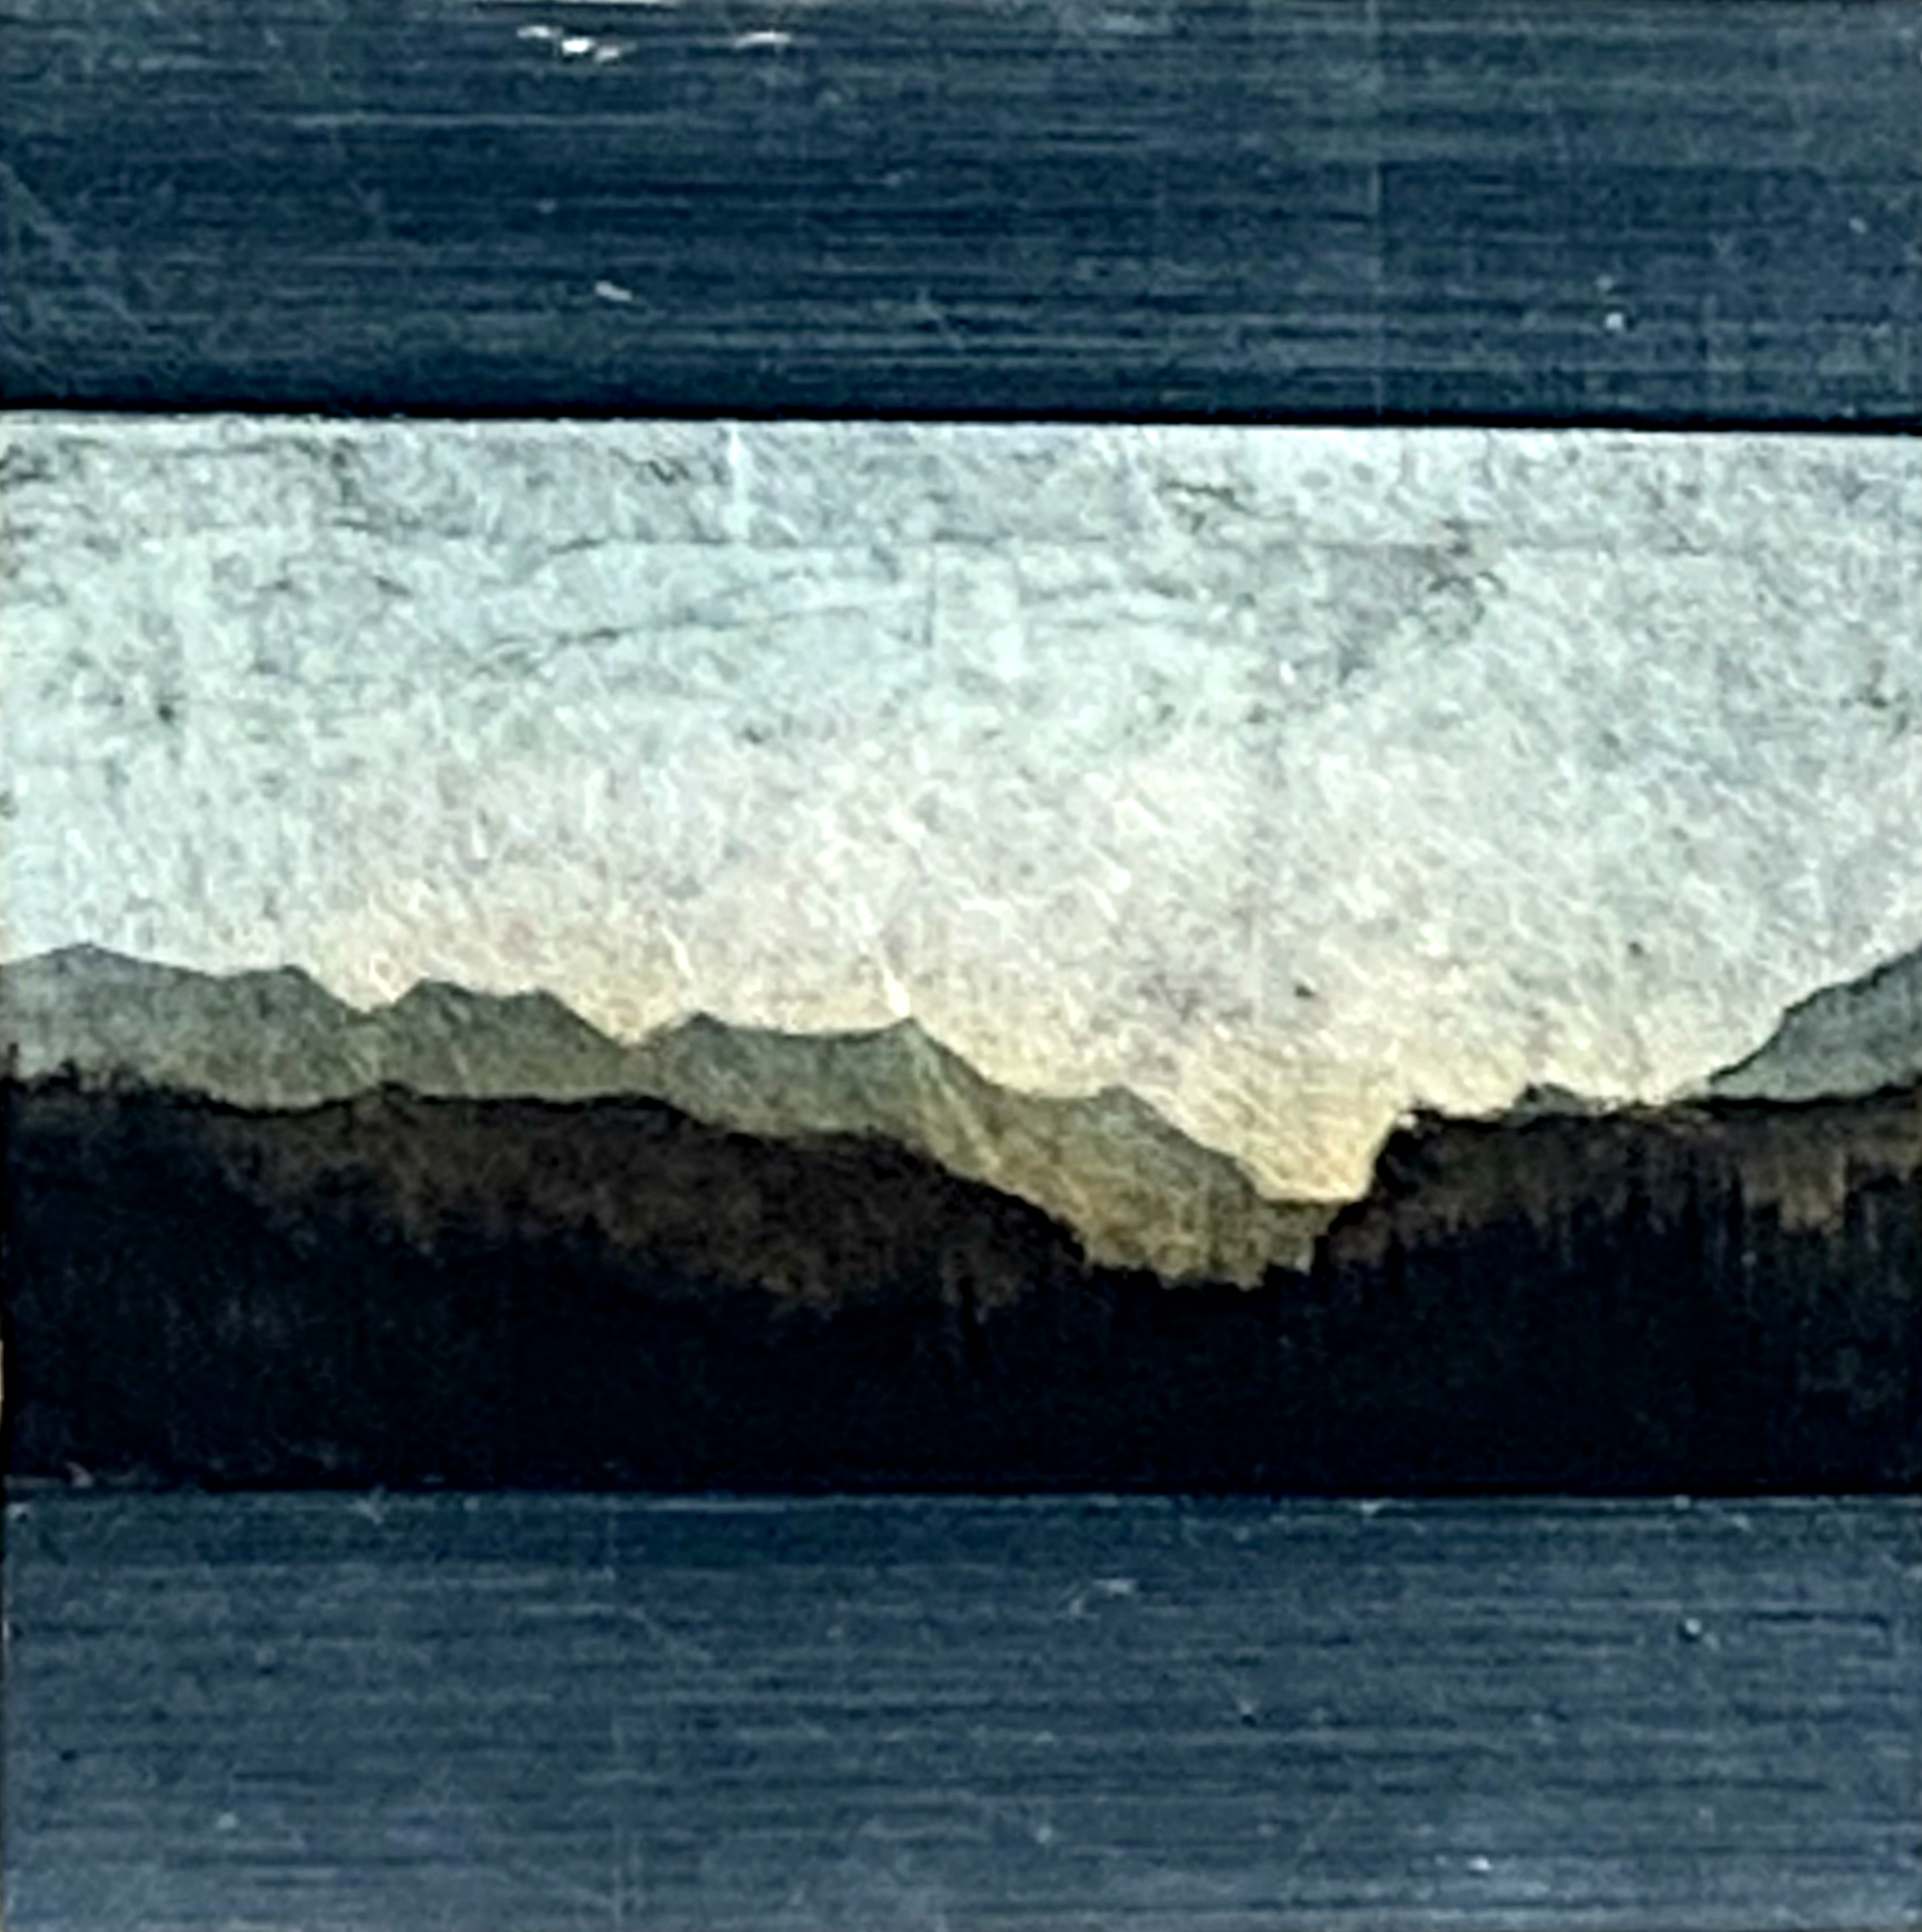 180, mixed media landscape painting by David Graff | Effusion Art Gallery + Cast Glass Studio, Invermere BC